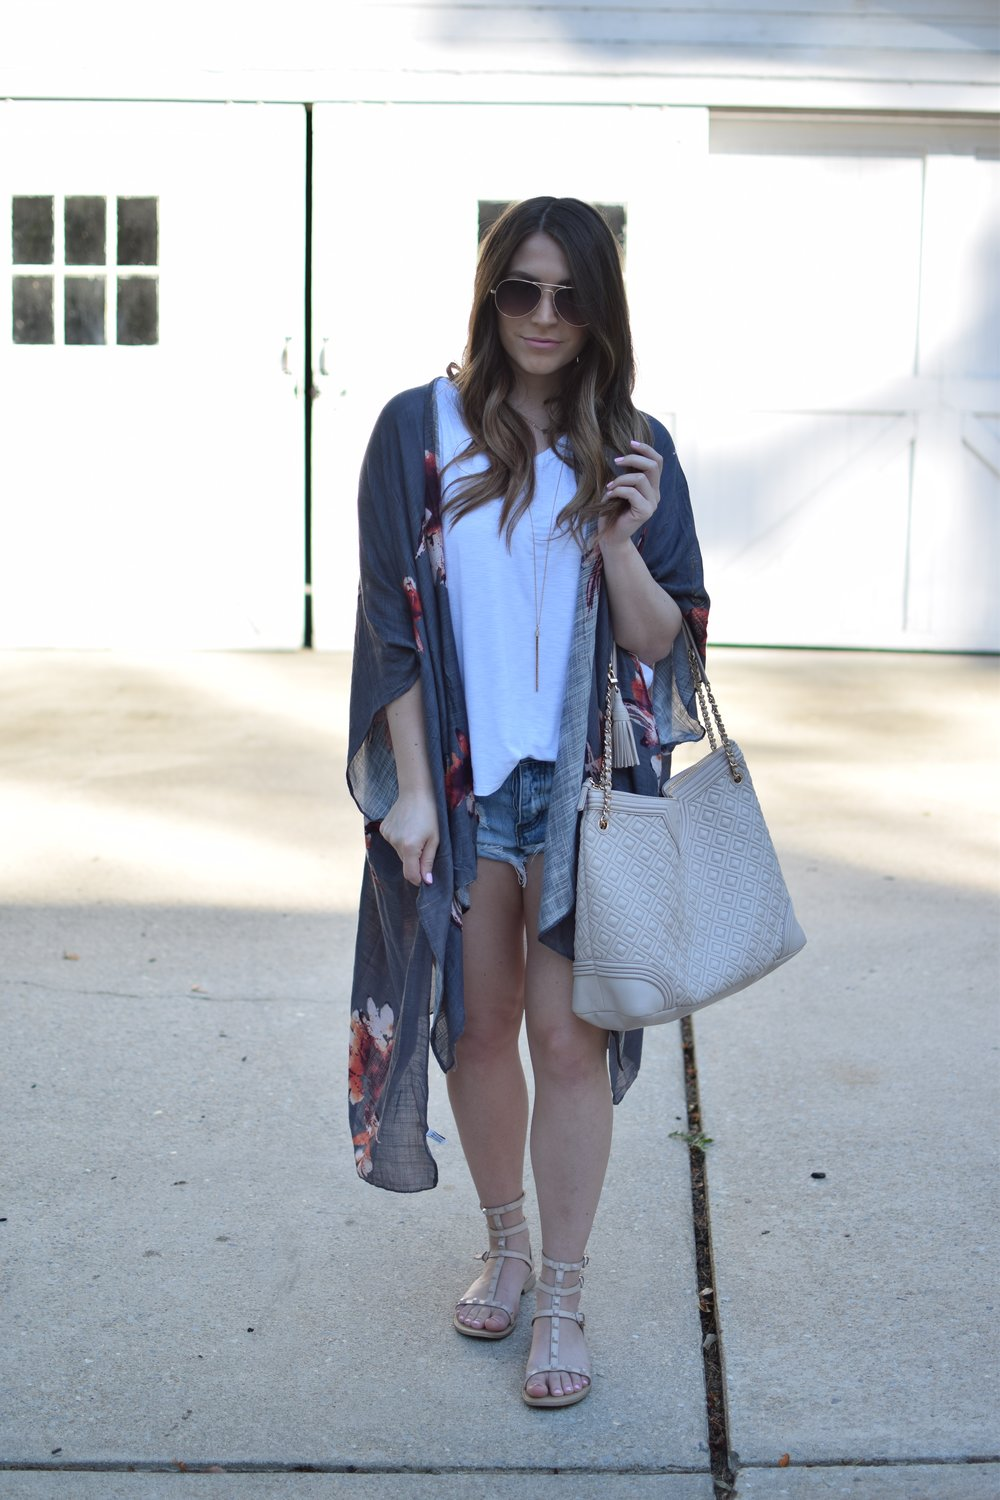 summer outfit idea / denim cutoffs + white tee + floral kimono + gladiator sandals